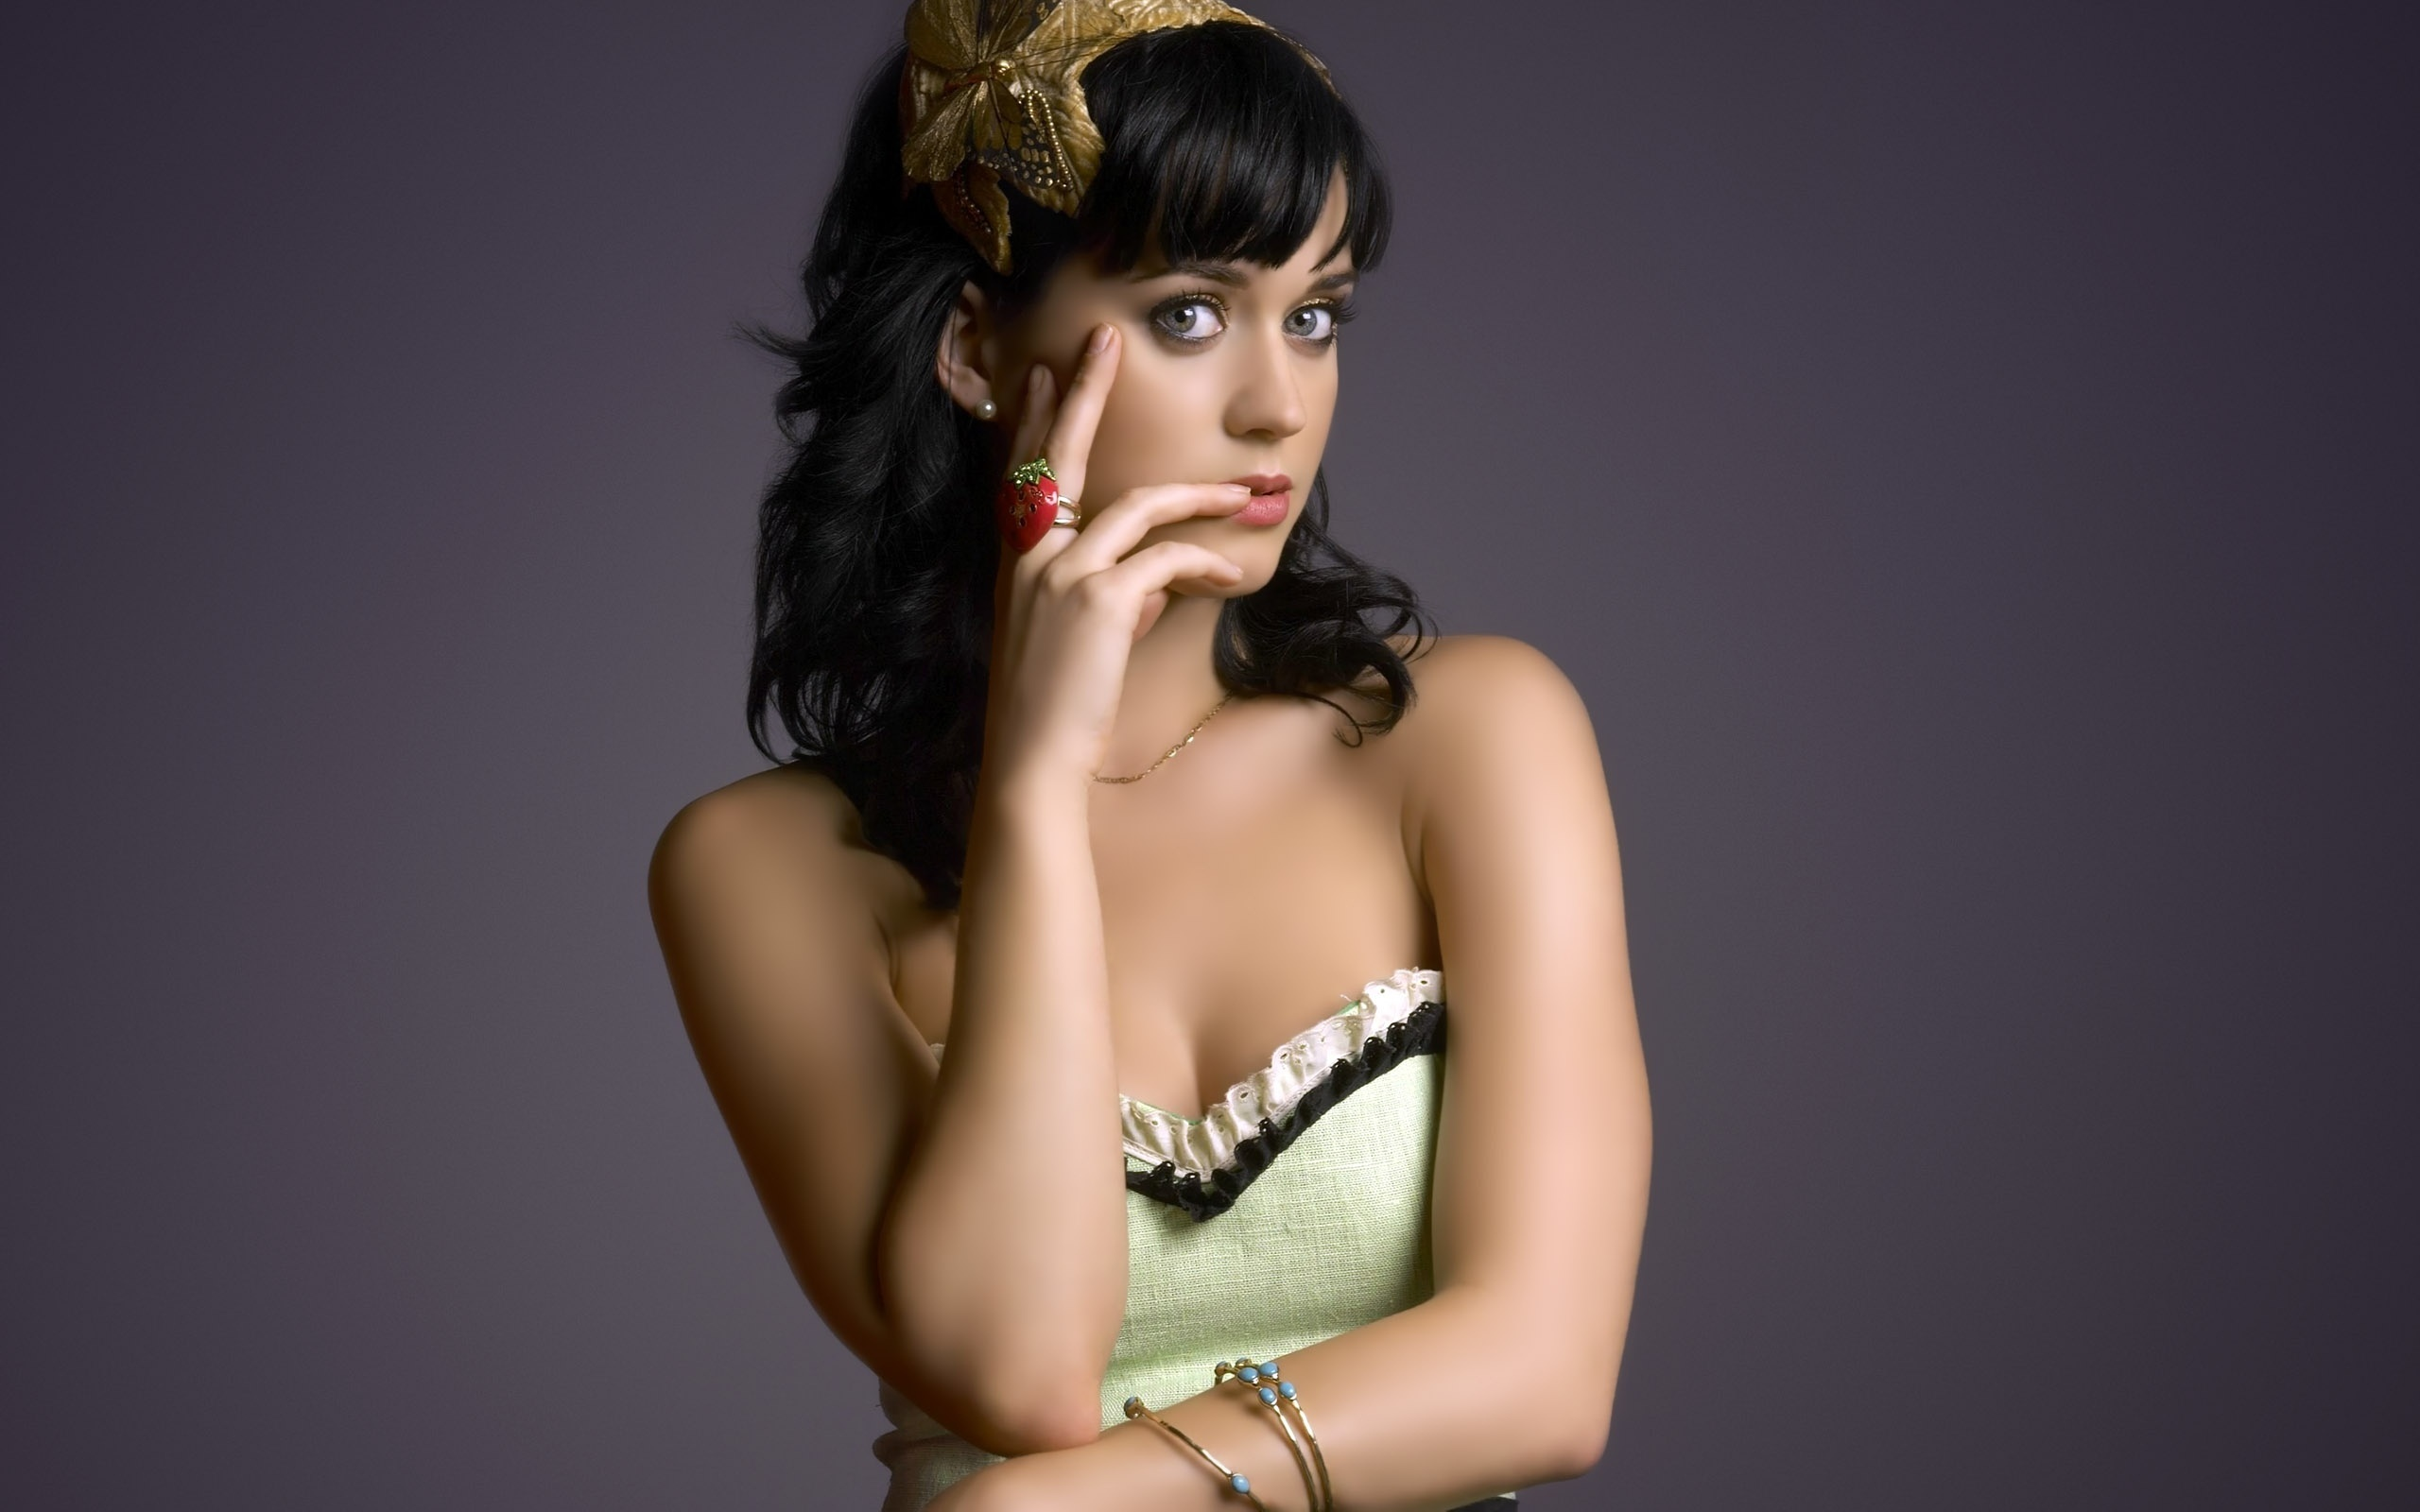 Katy Perry Res: 2560x1600 / Size:413kb. Views: 36845